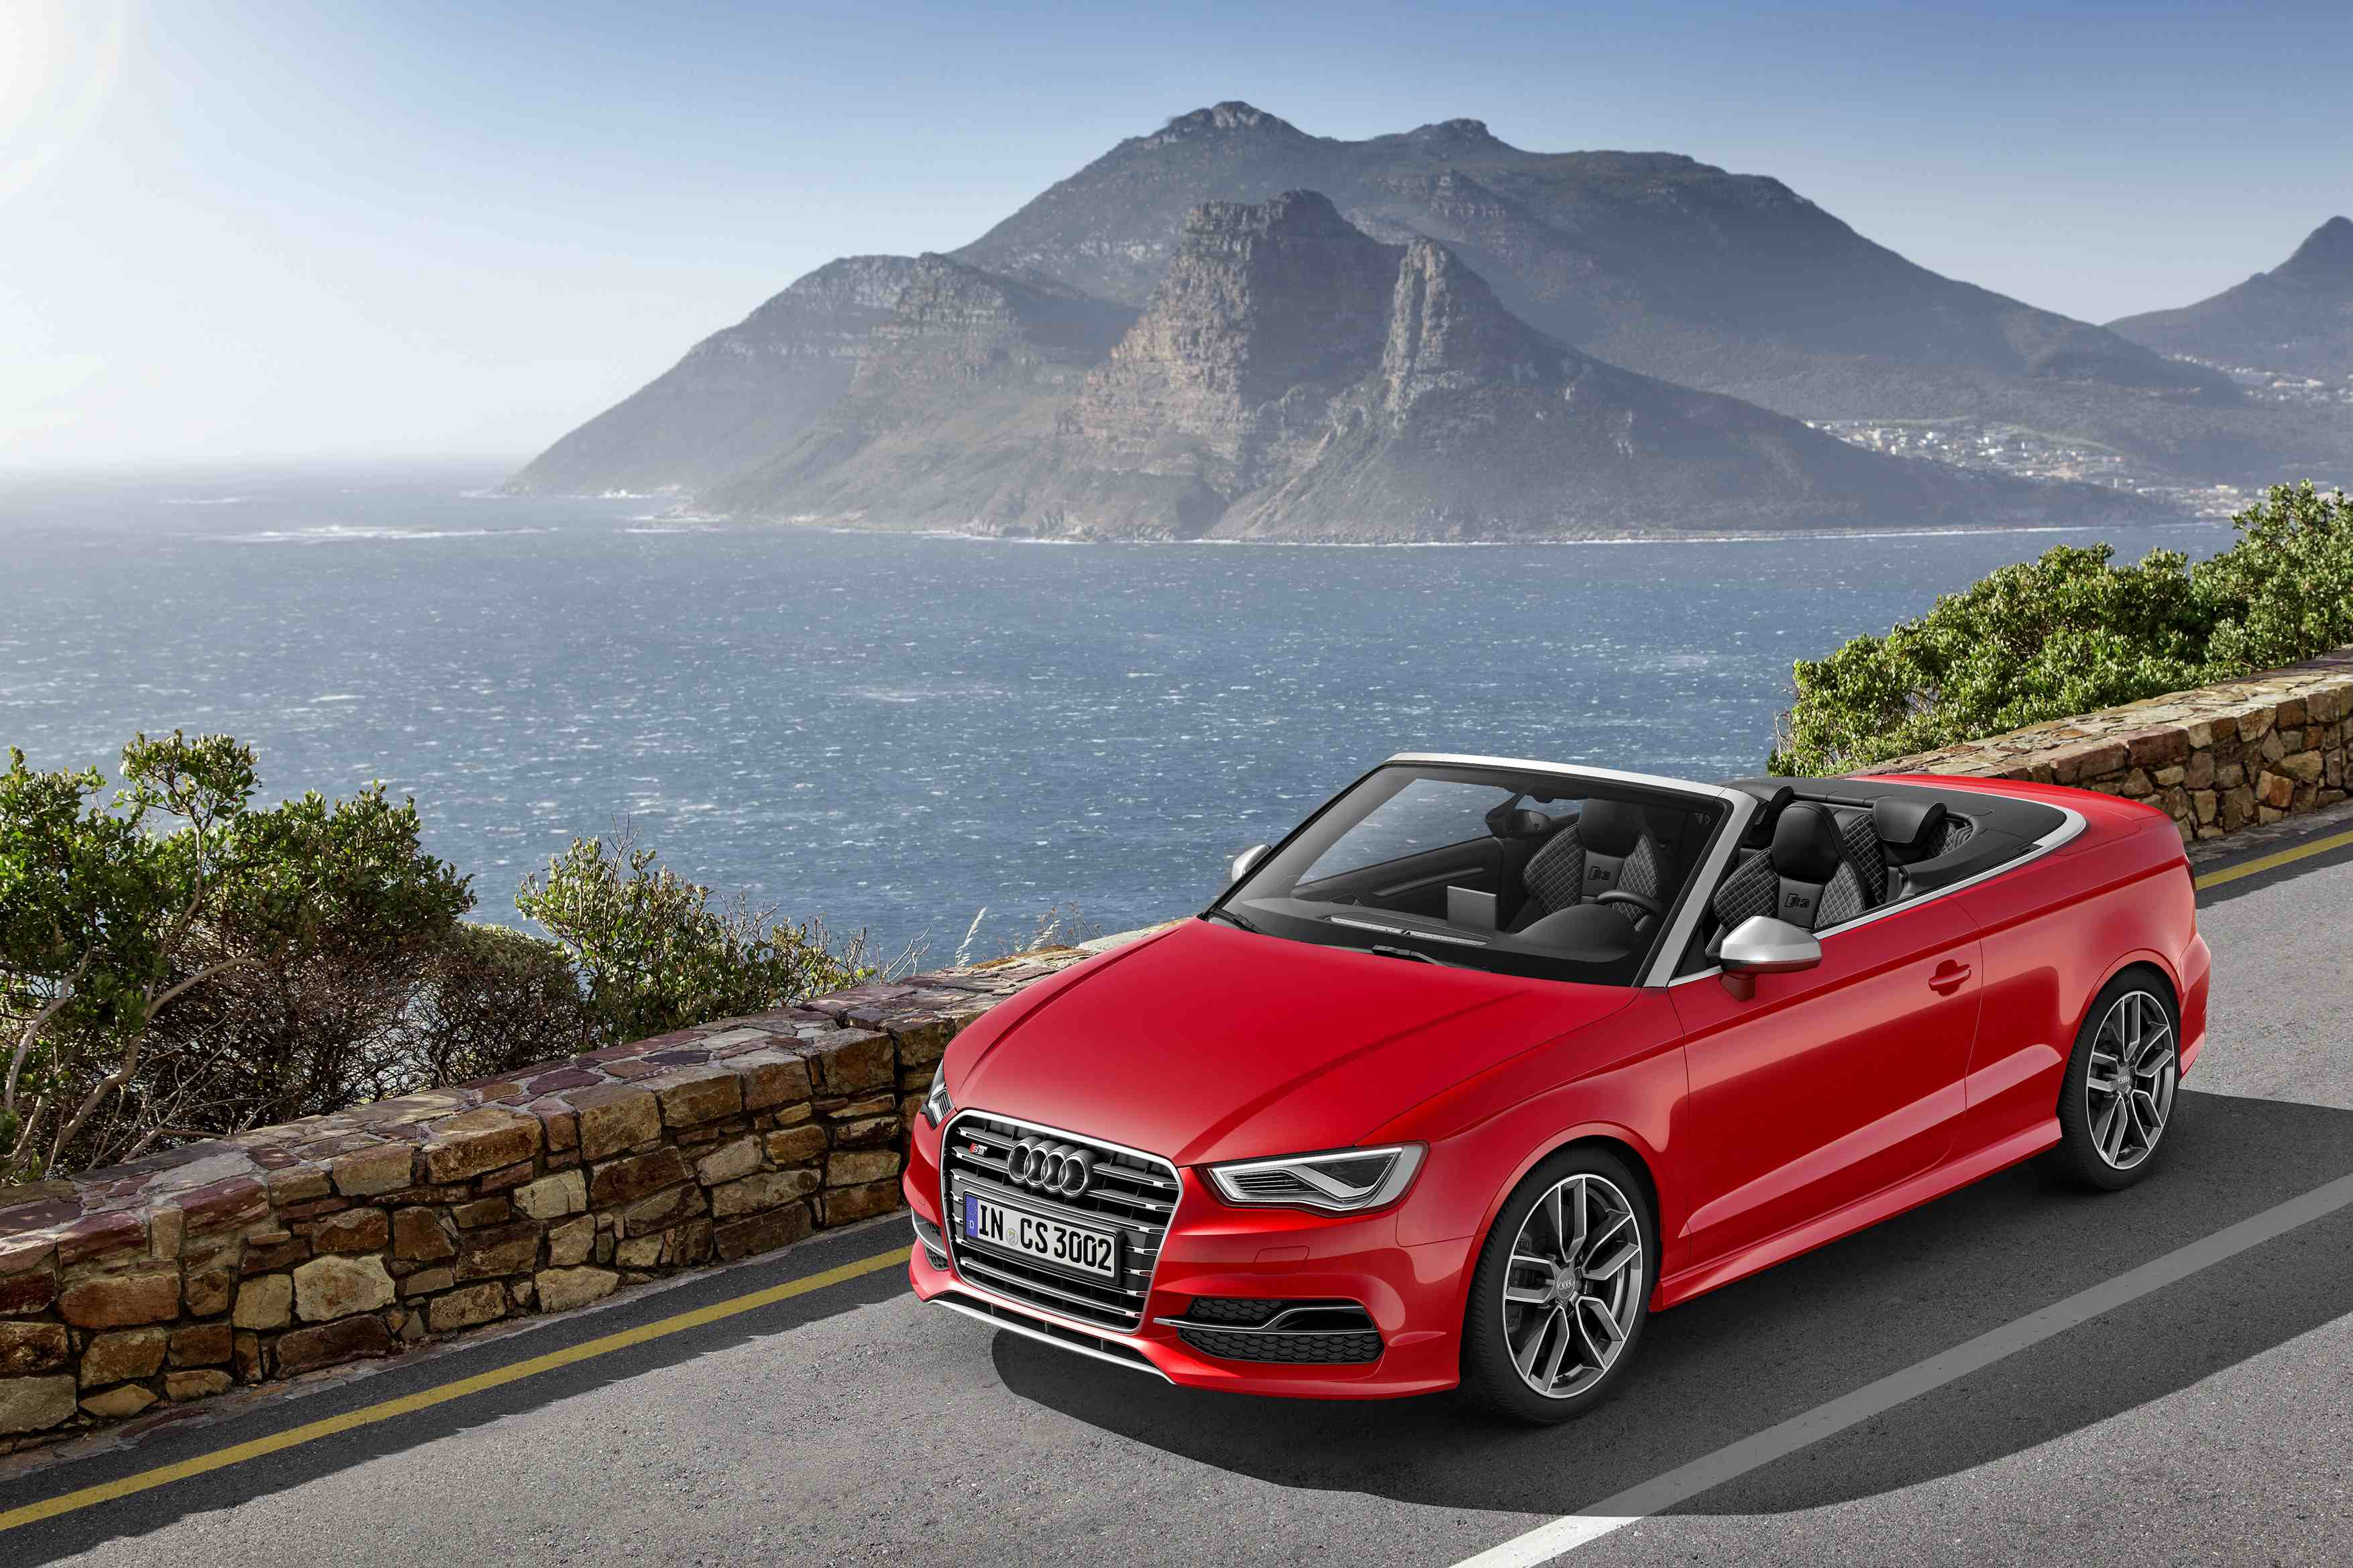 Audi S3 Sheds Top: Latest News